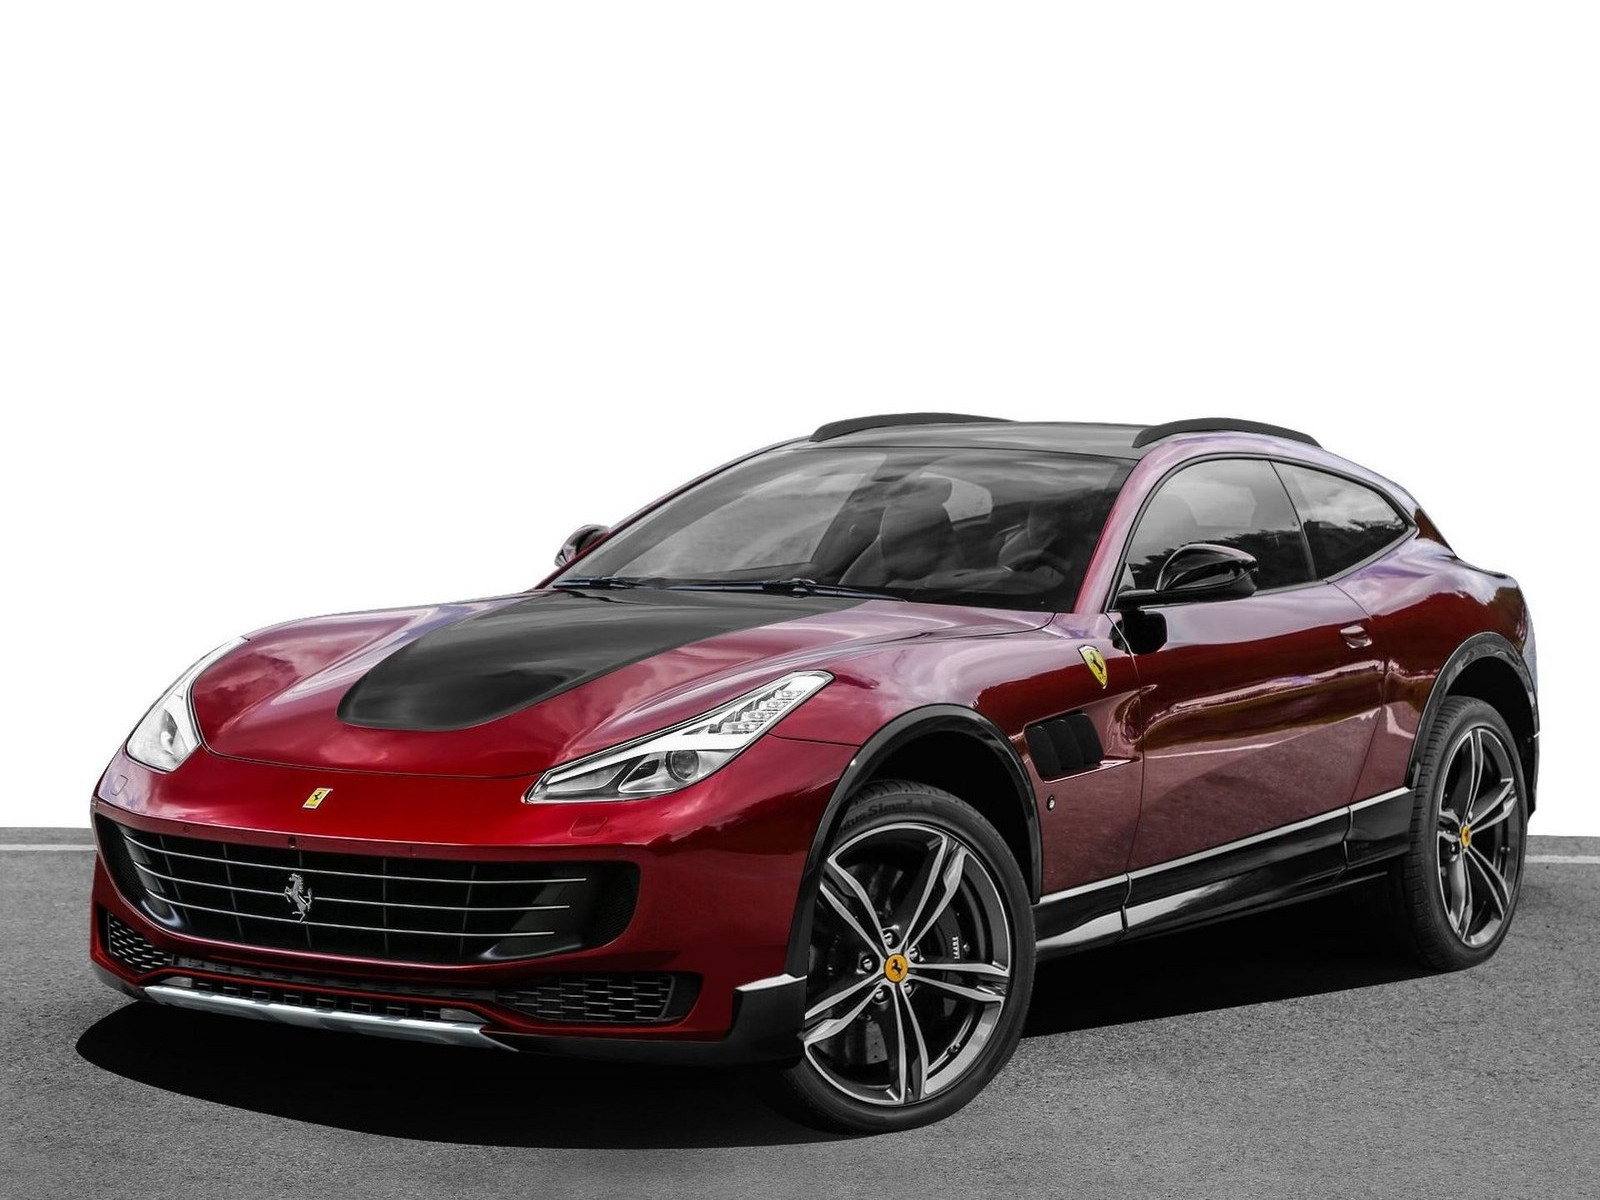 Ferrari Purosangue Suv Confirmed And 14 Other New Cars Torquing Cars